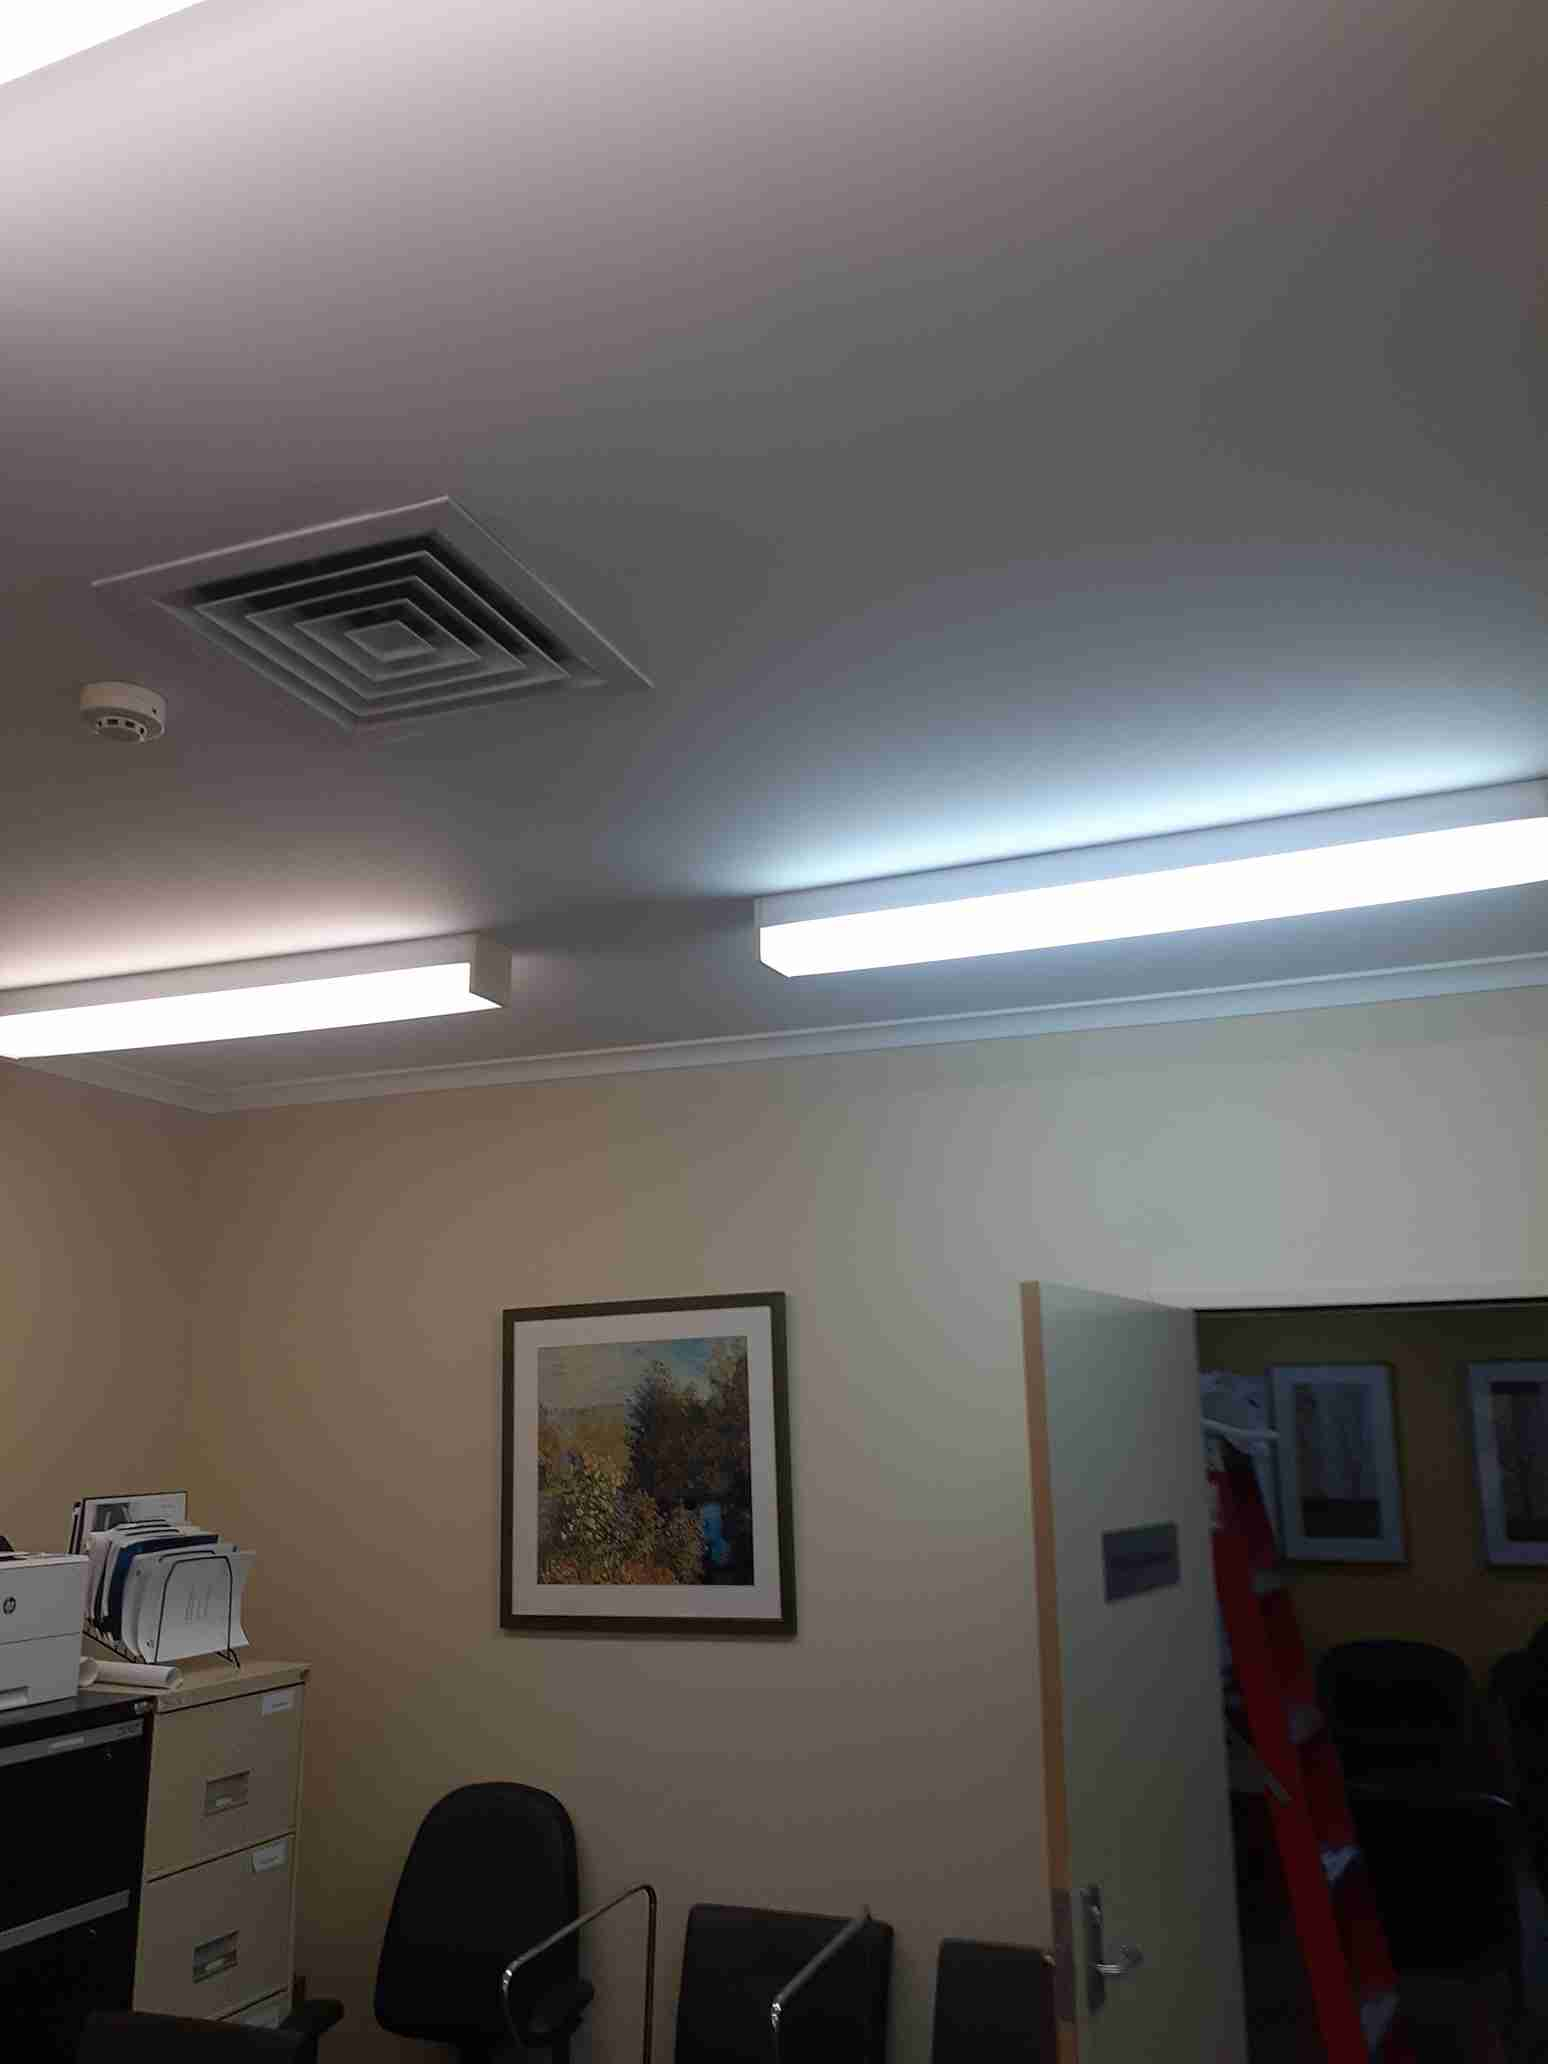 Electrical Installation - Lighting at Whittington By Mr. Electric of Geelong via i4Tradies